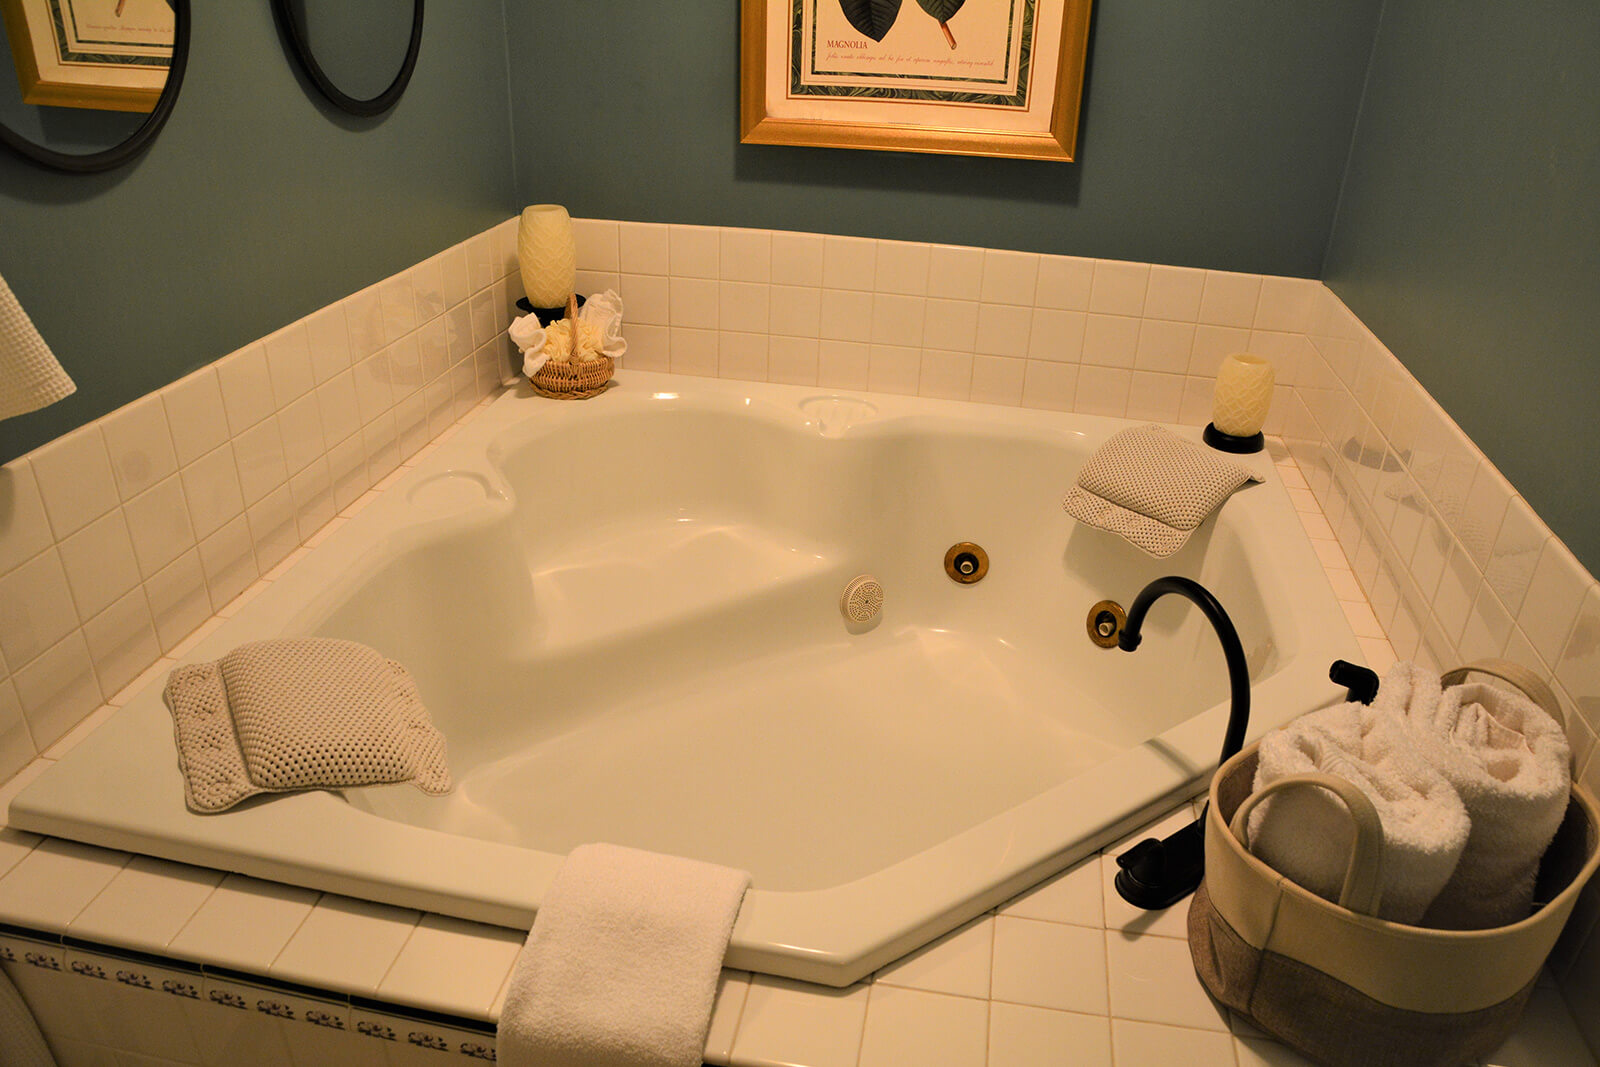 Jacuzzi tub, Magnolia Place Bed & Breakfast, Finger Lakes, NY